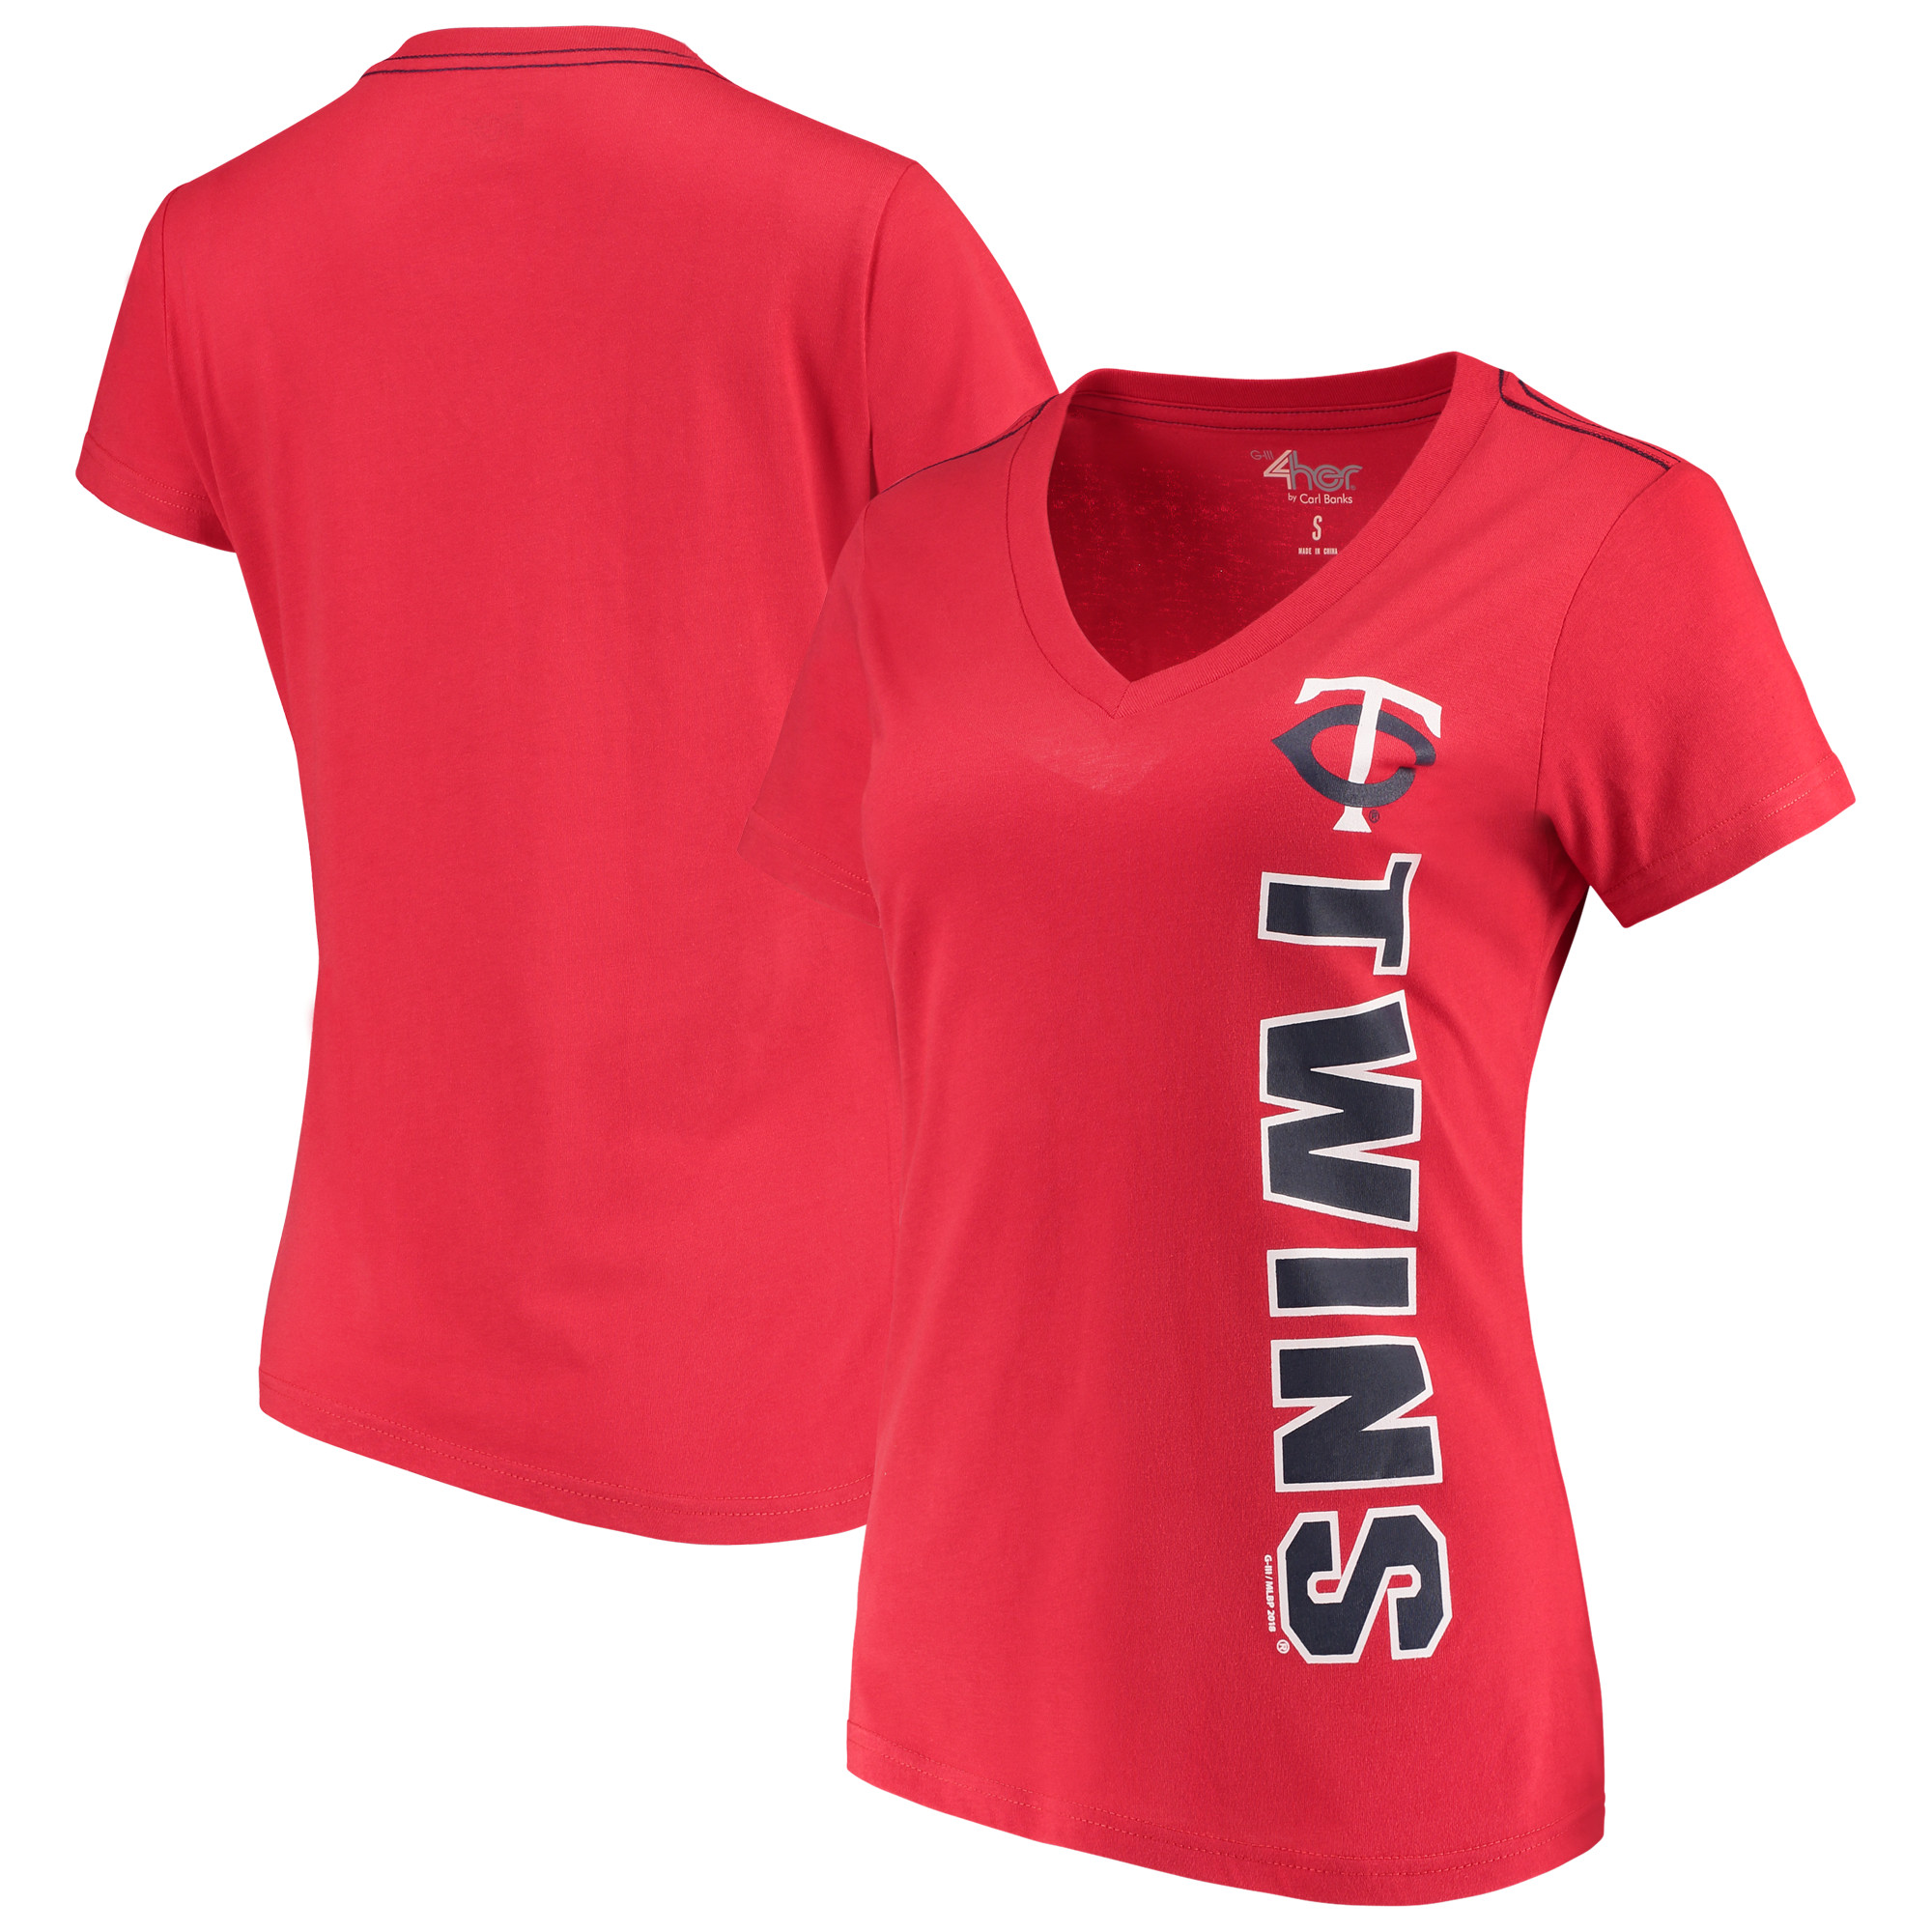 Minnesota Twins G-III 4Her by Carl Banks Women's Asterisk V-Neck T-Shirt - Red